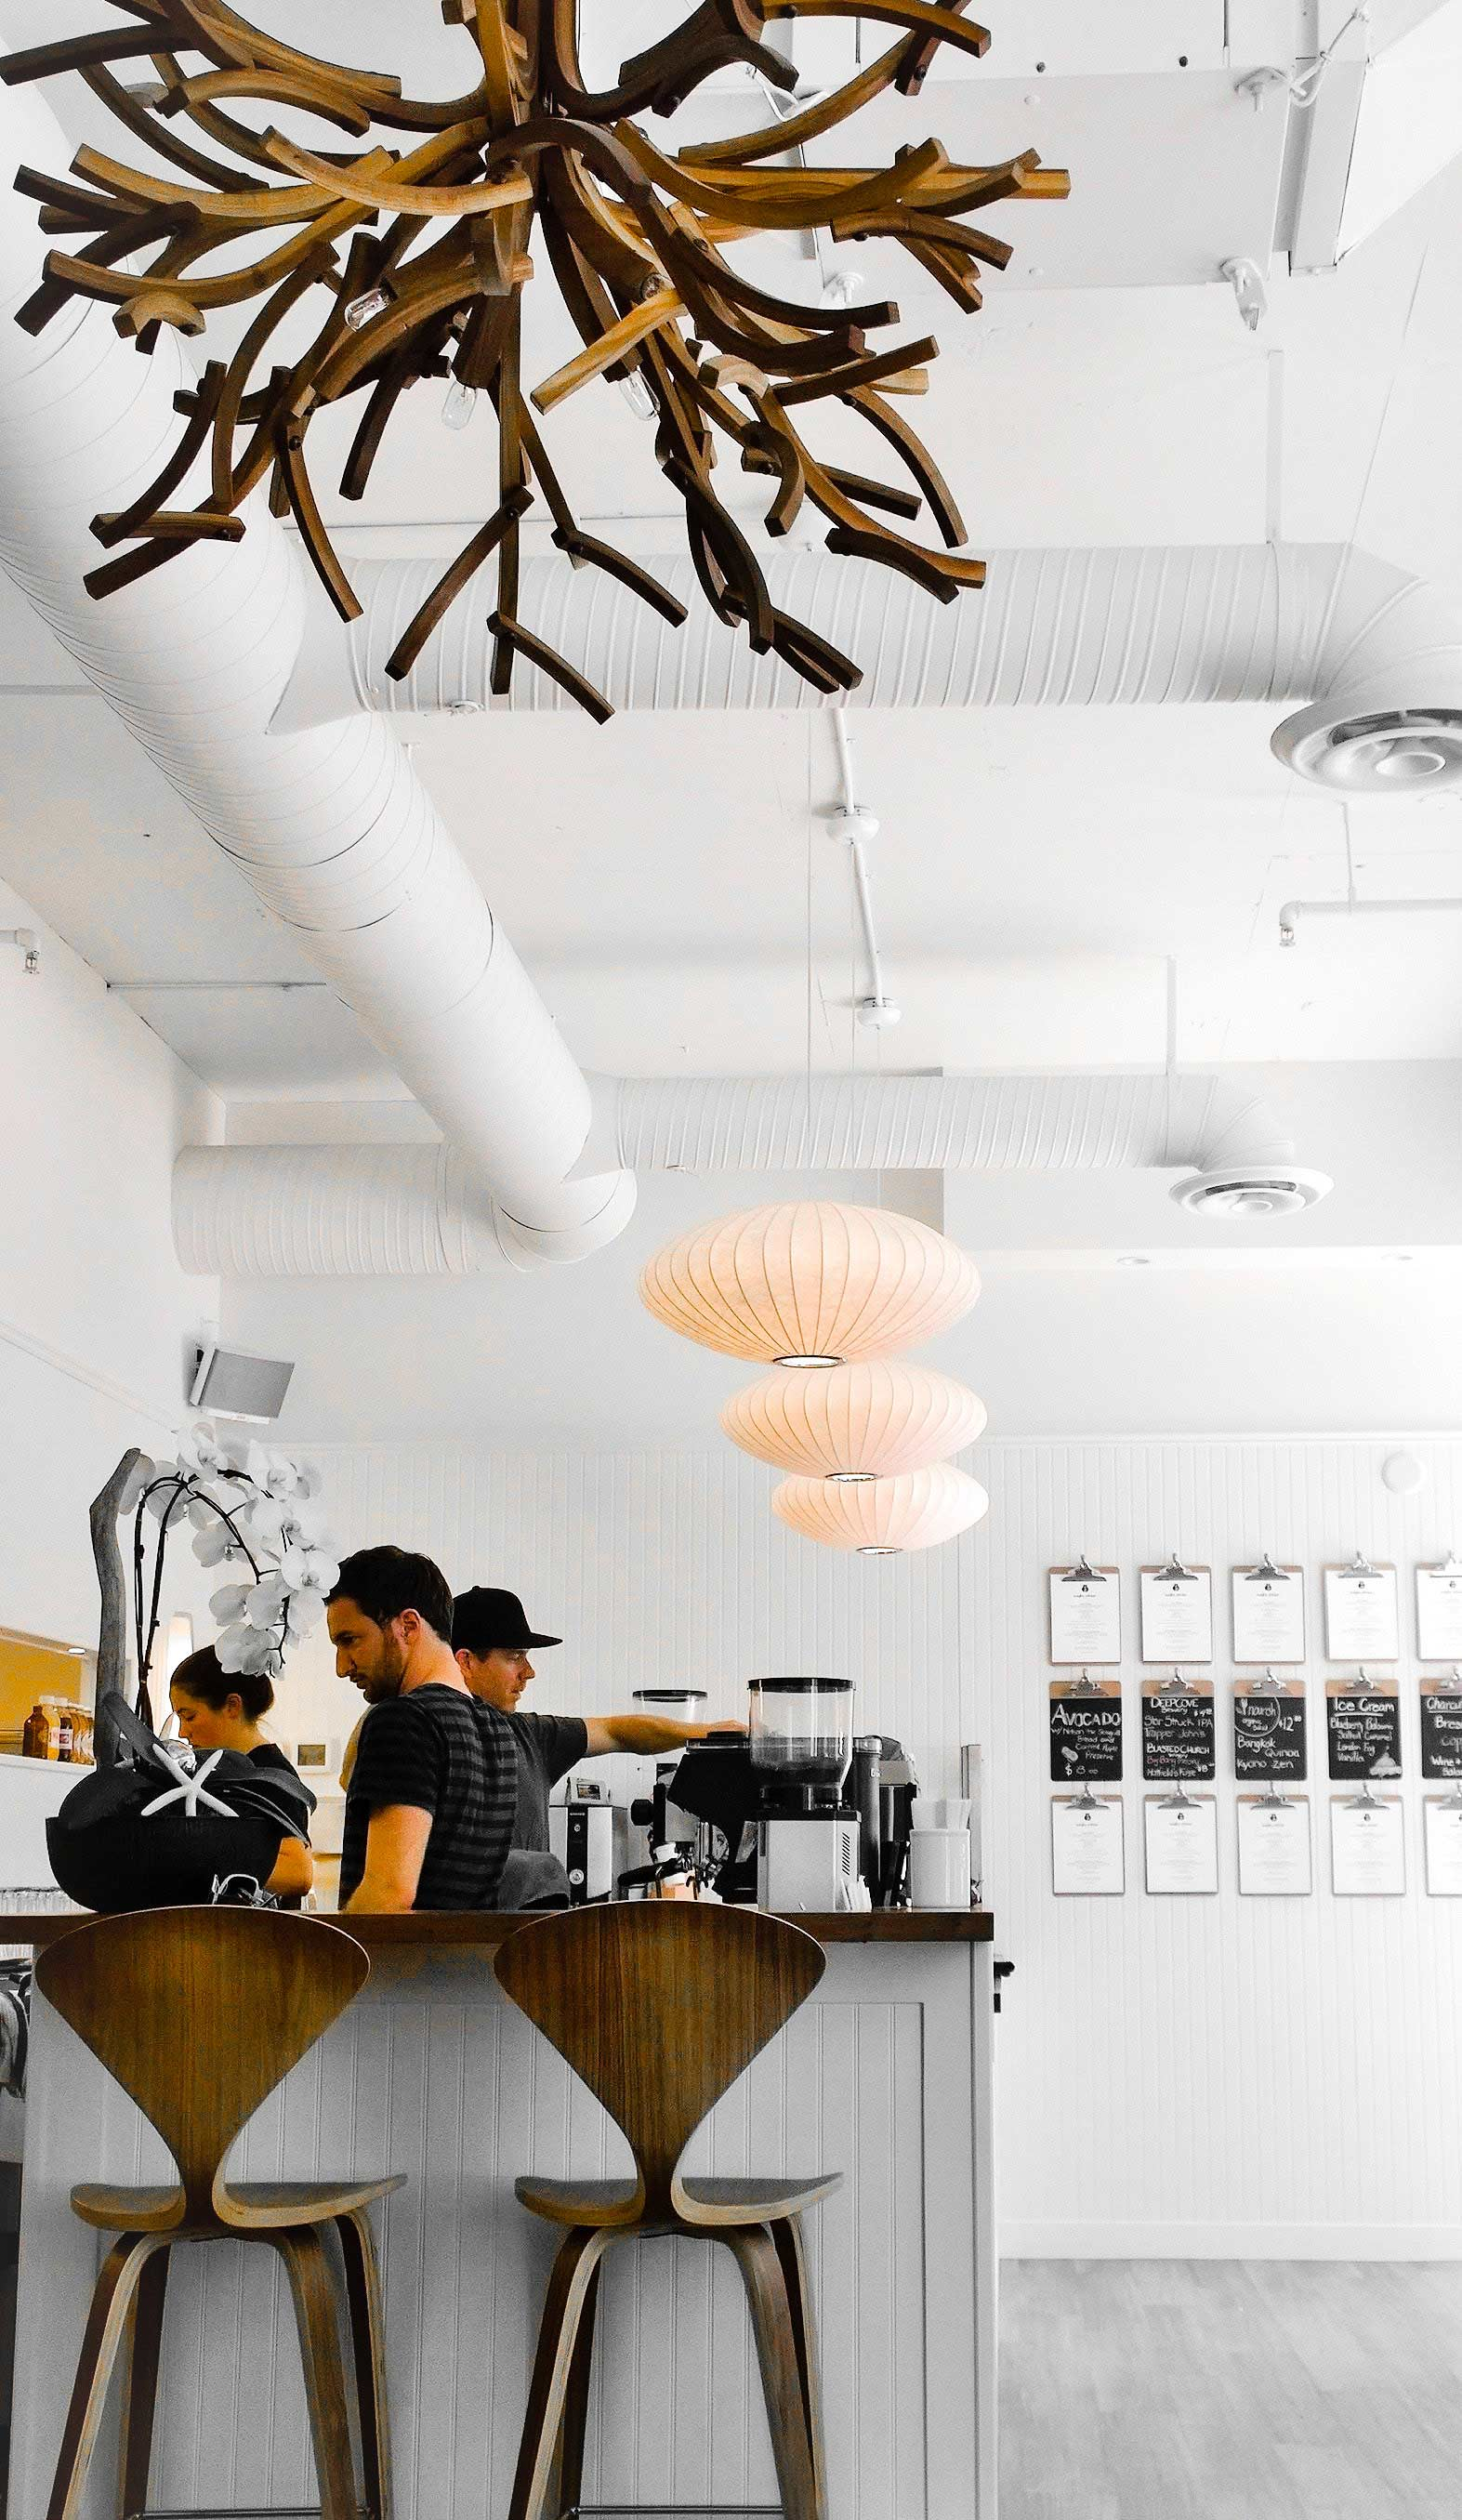 Cafe Orso - Focal Journey by Gustavo Espinola